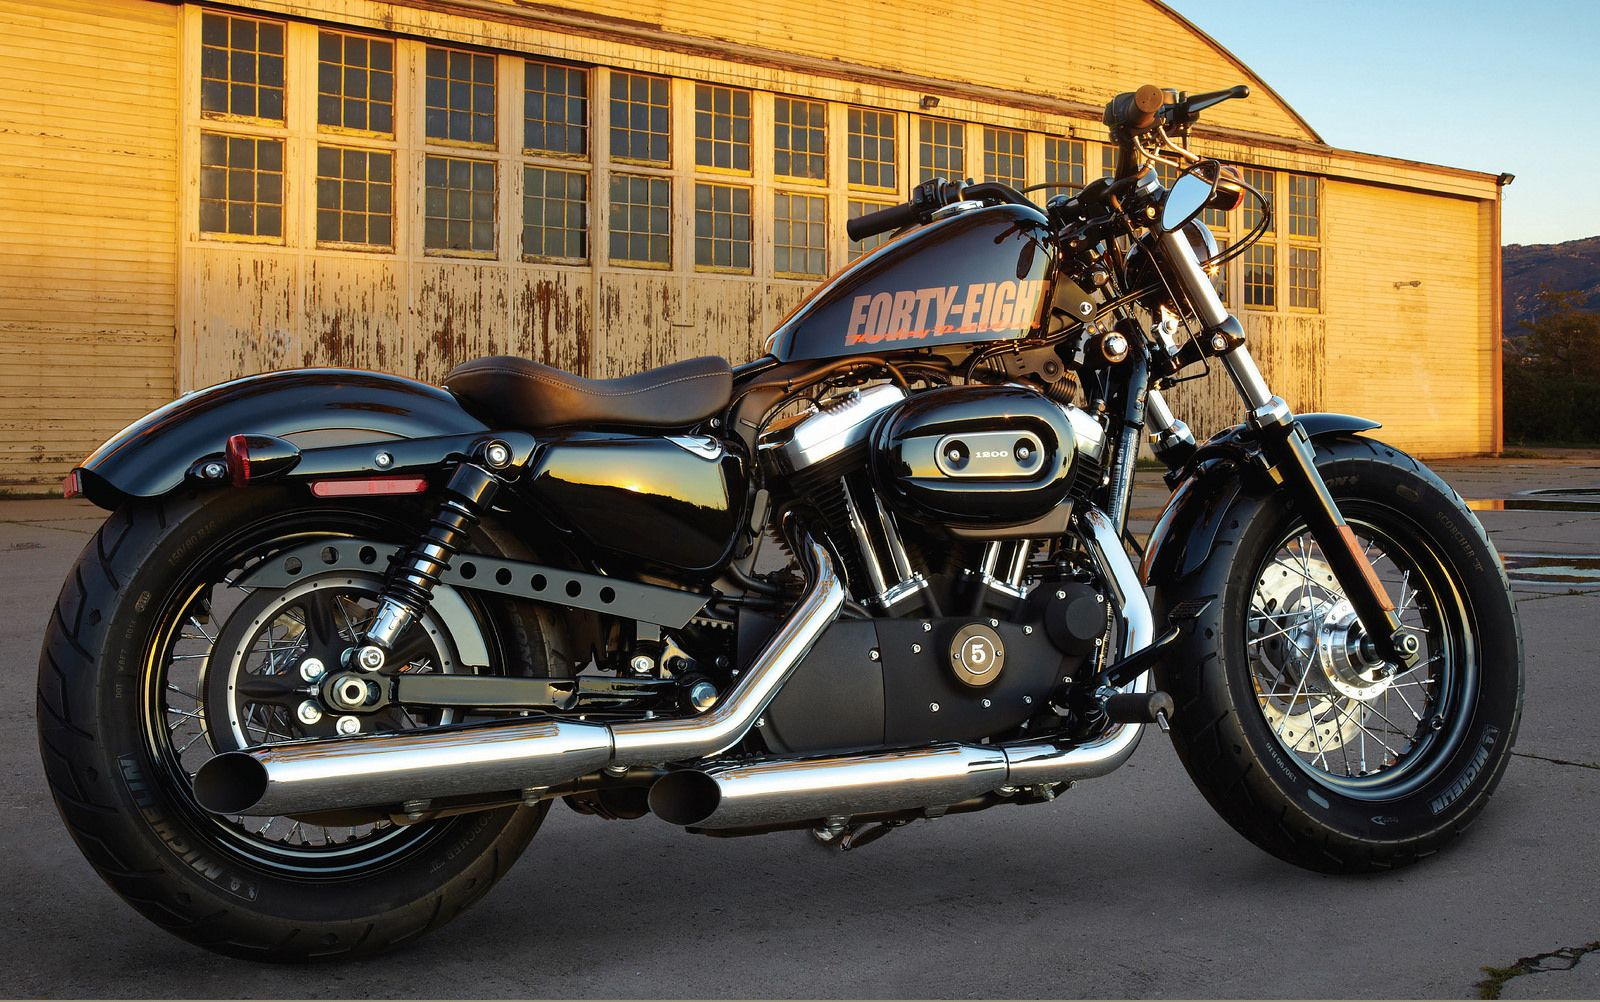 M427 Clymer Manuals Harley Davidson Xl883 Xl1200 Sportster Exhaust Diagram Does Not Include Includes Color Wiring Diagrams Motorcycle Repair Are Written Specifically For The Do It Yourself